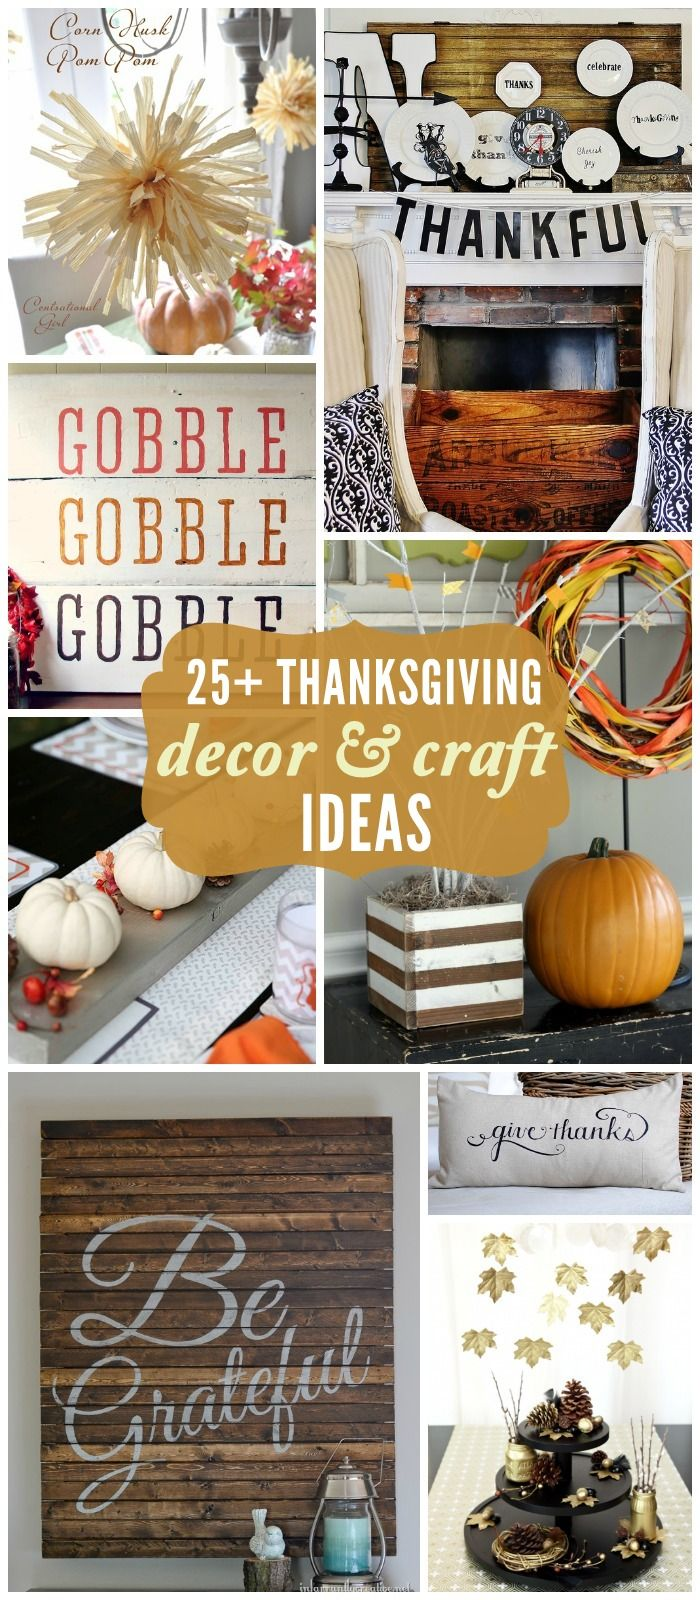 25+ Thanksgiving Decor and Craft ideas on { lilluna.com } #thanksgiving